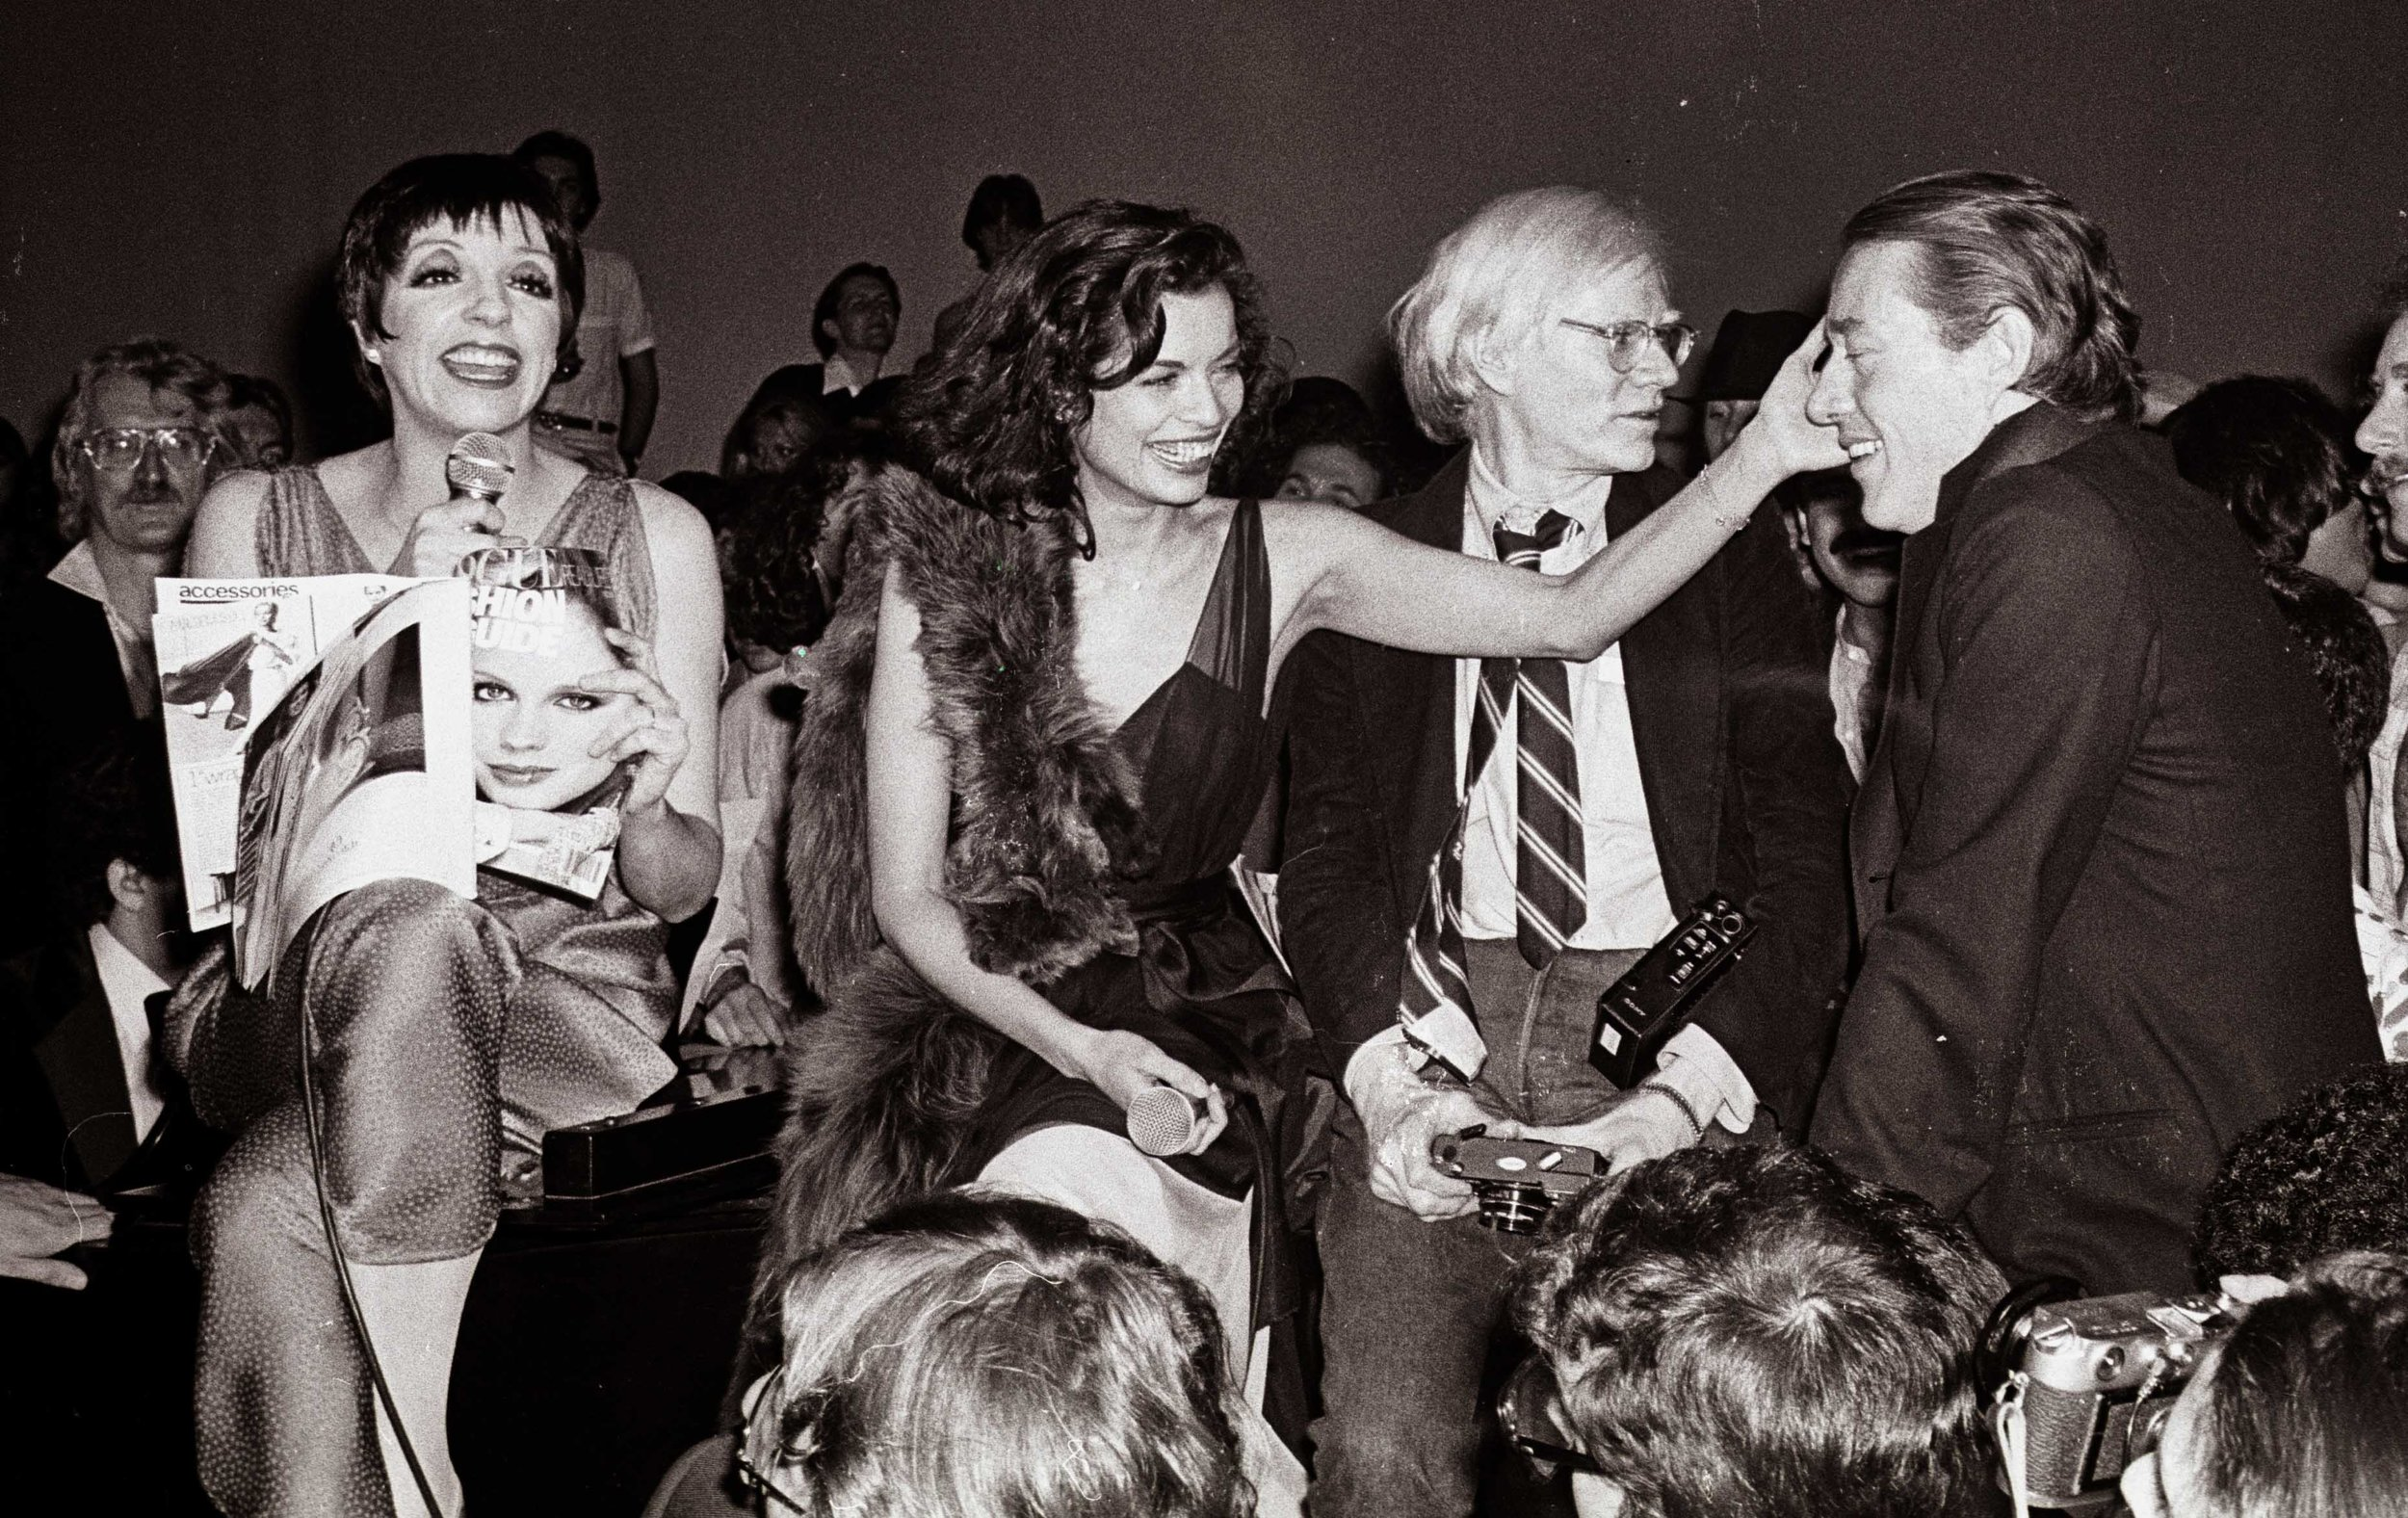 Studio54_photo02_AdamSchull.jpg